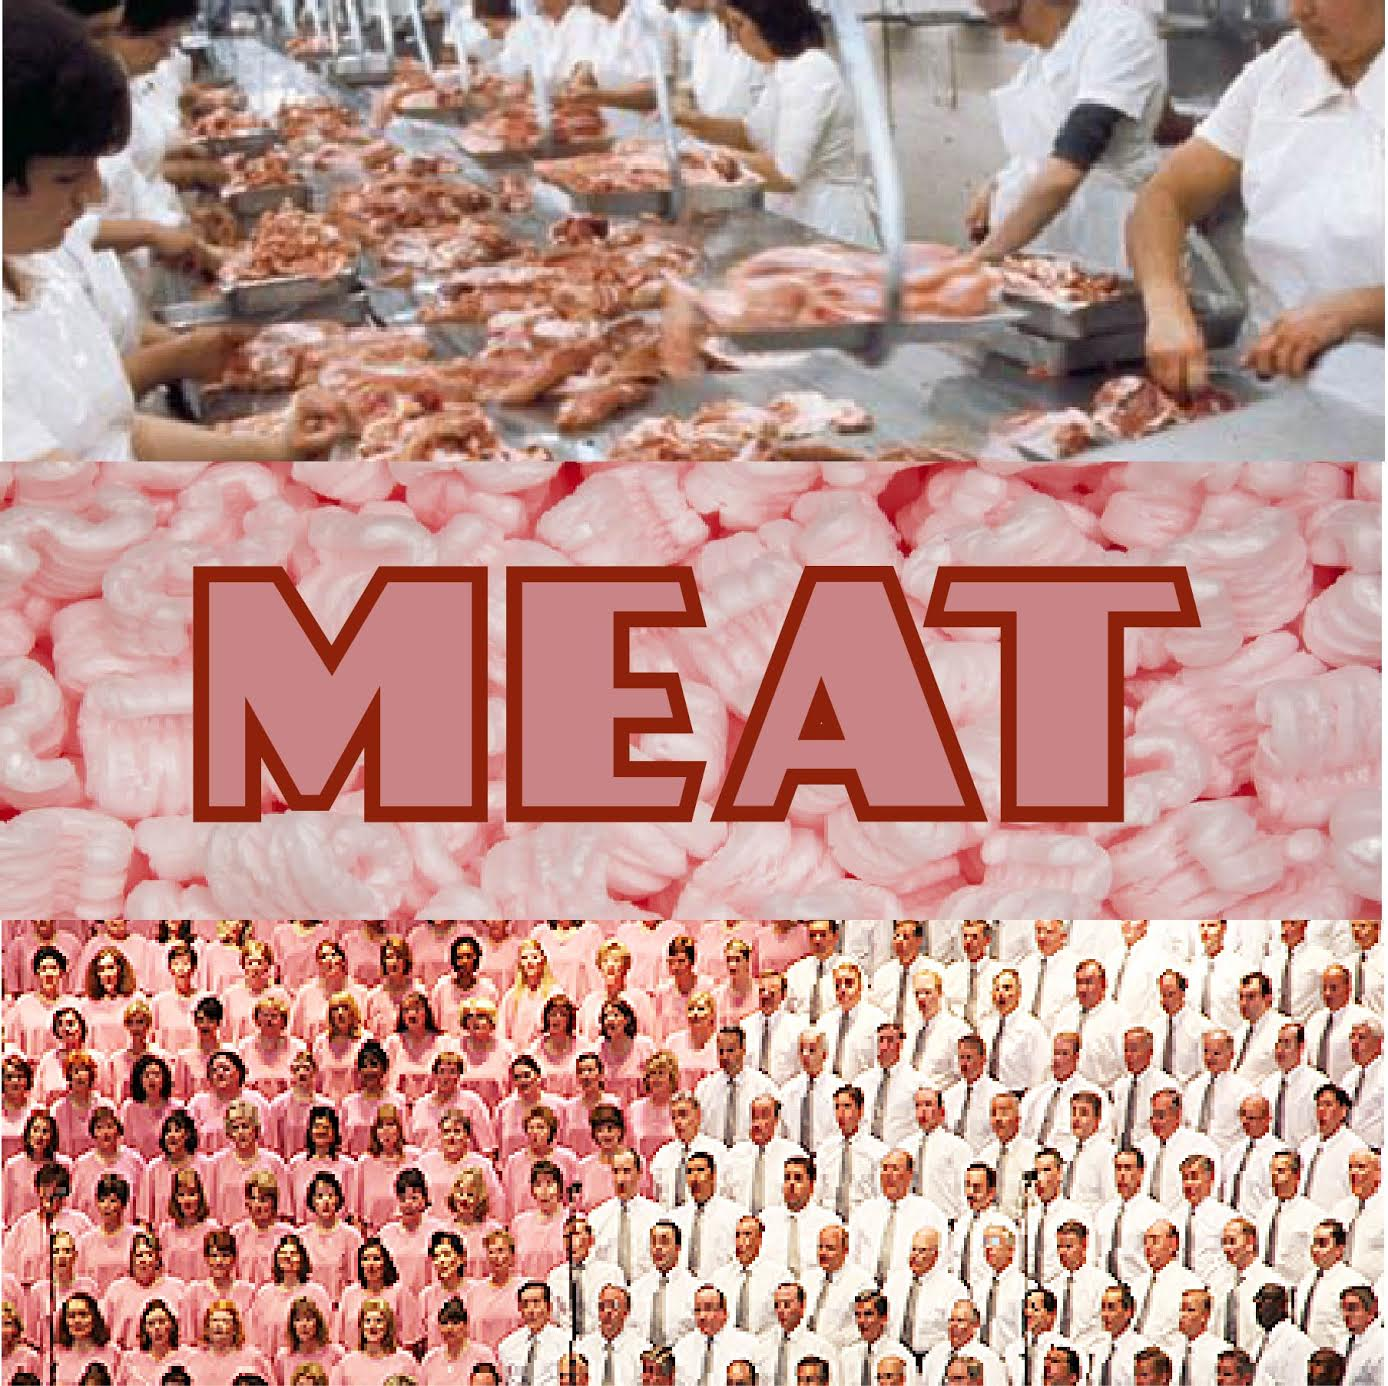 Moral Meats! America's Best!You are what you eat!A cut above the rest! -